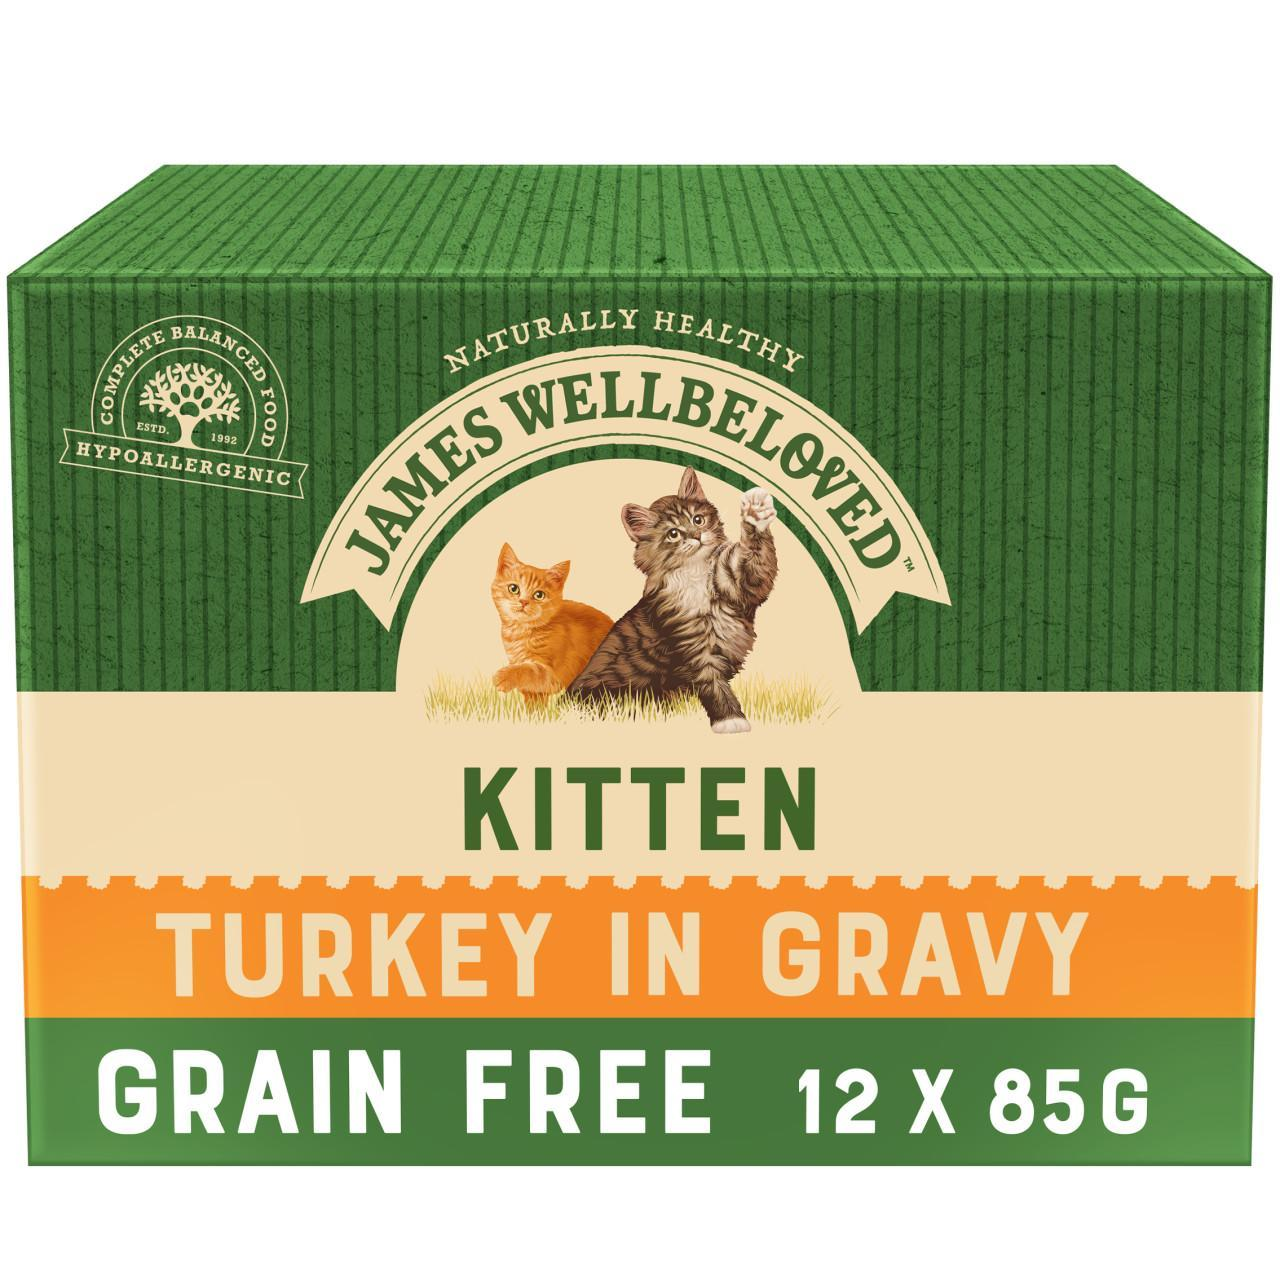 An image of James Wellbeloved Grain Free Kitten Turkey Pouches